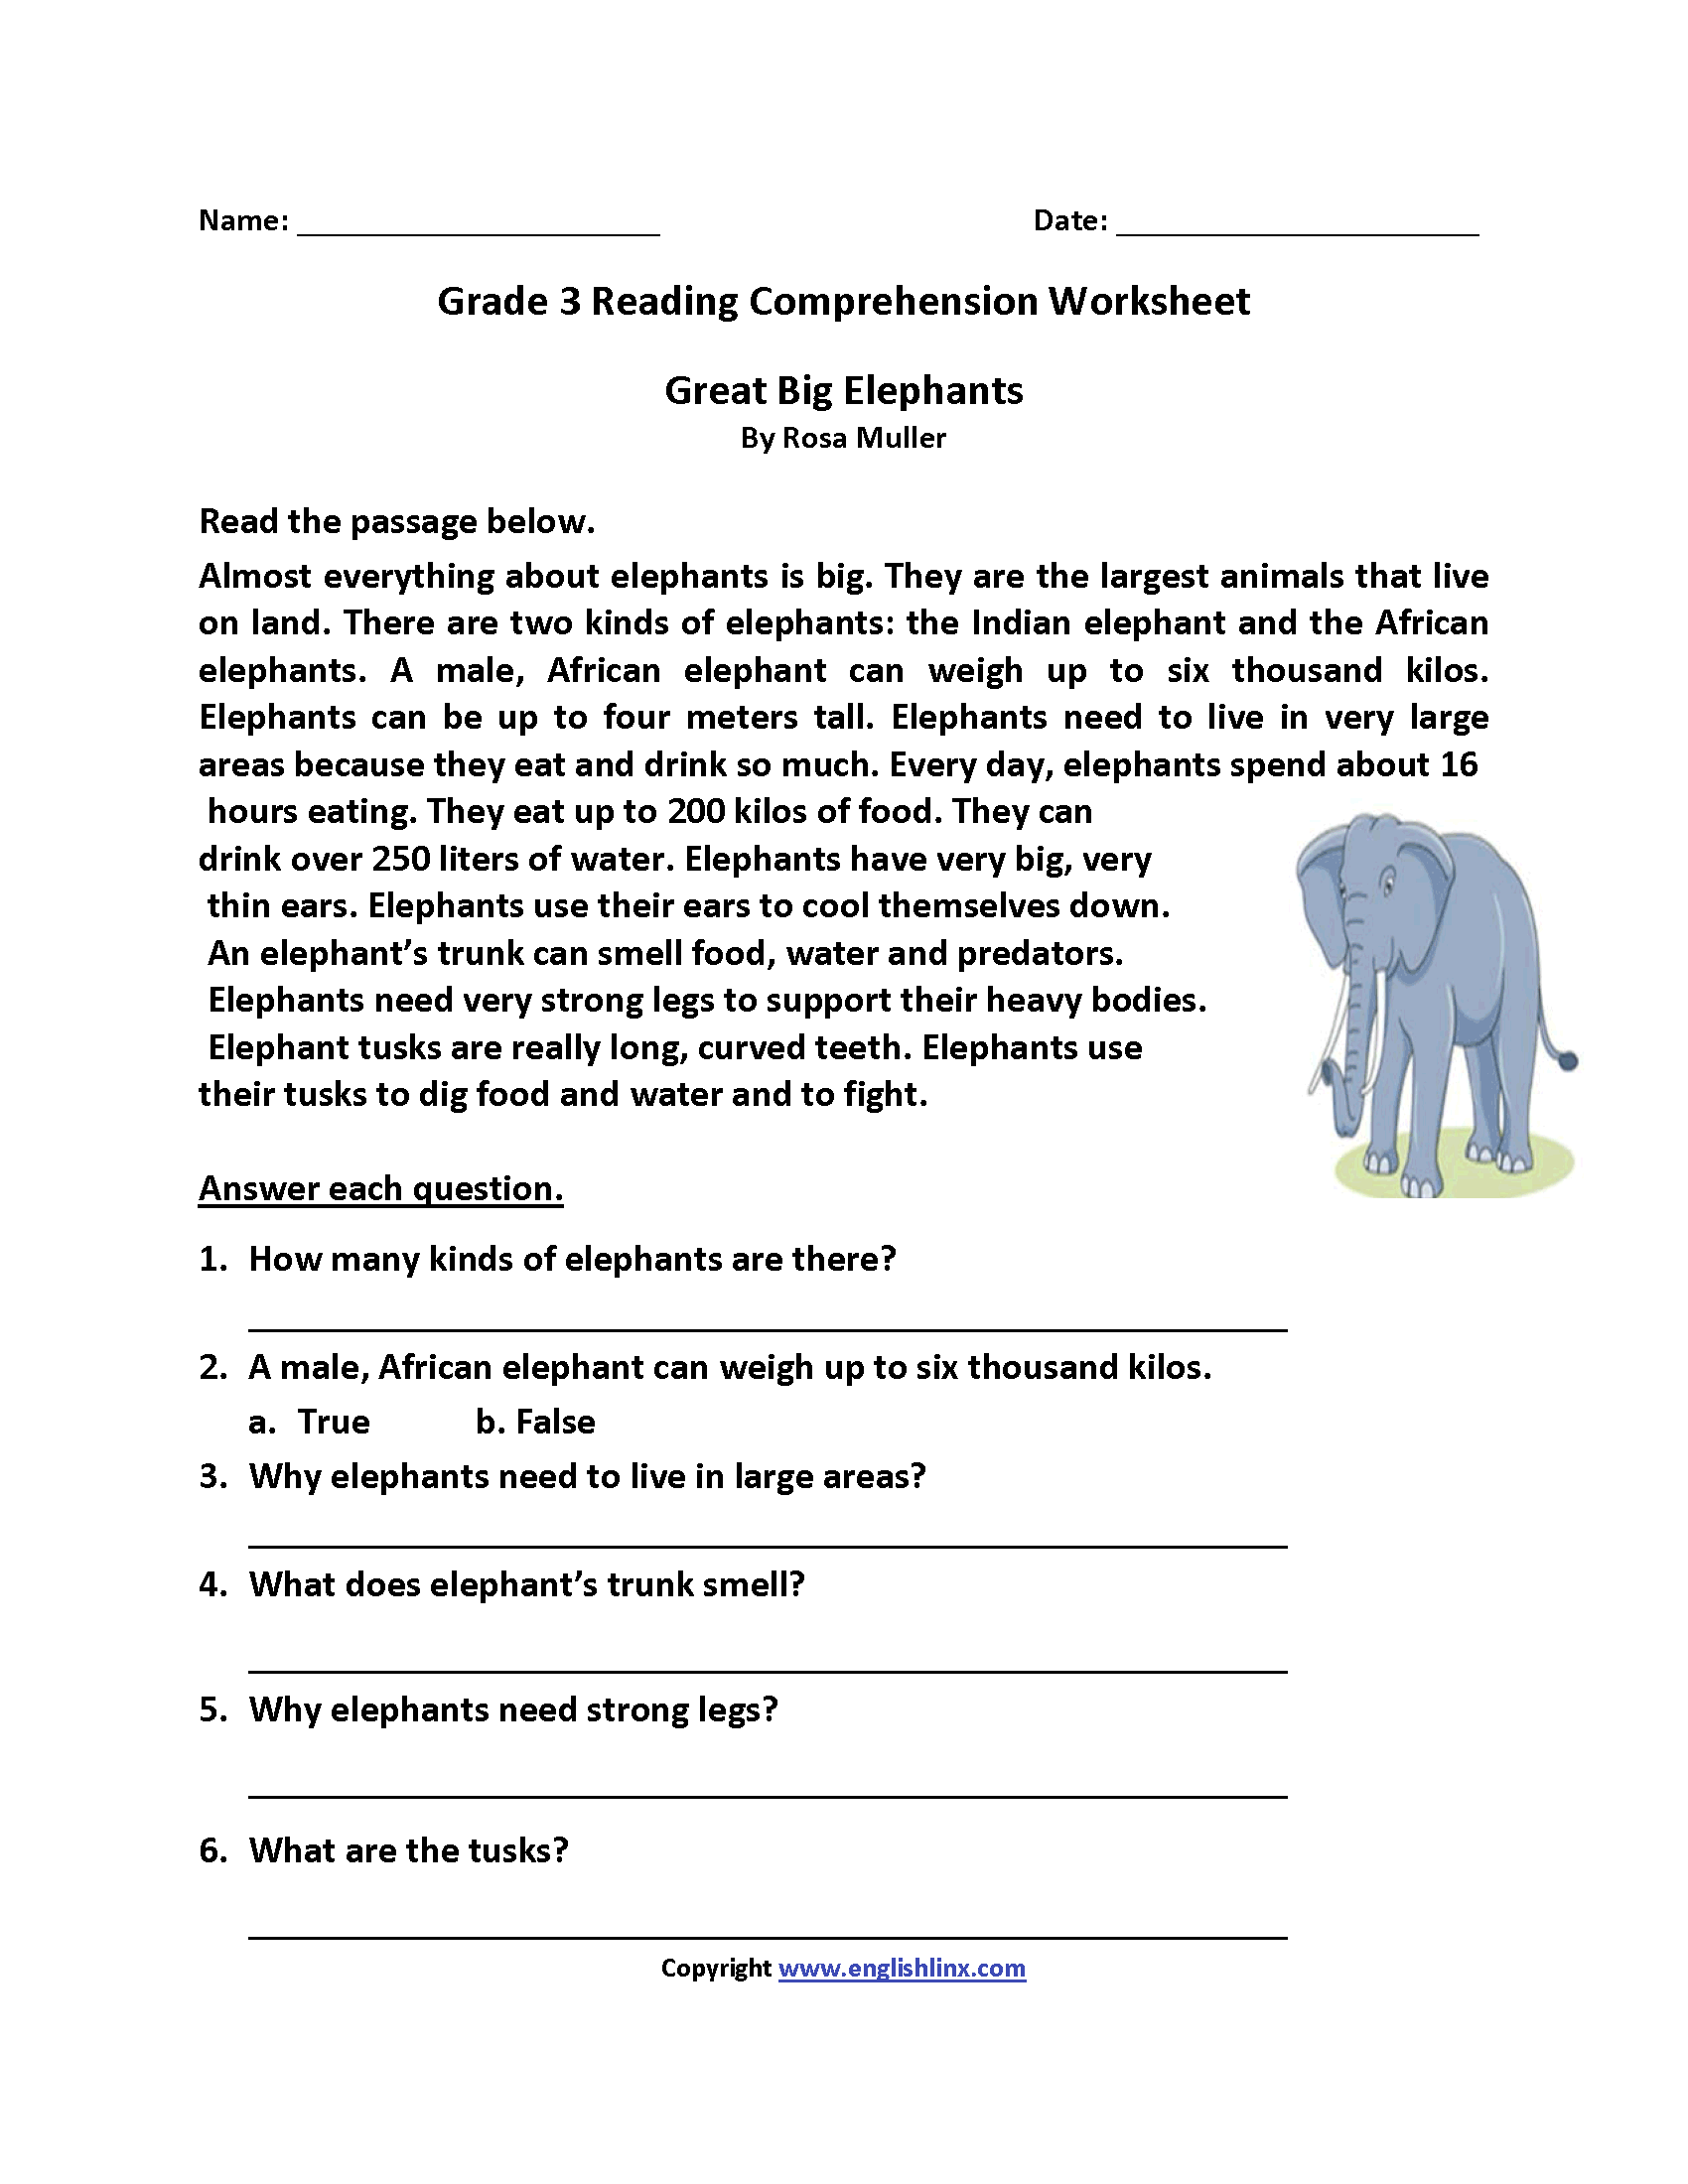 Great Big Elephants Third Grade Reading Worksheets (With